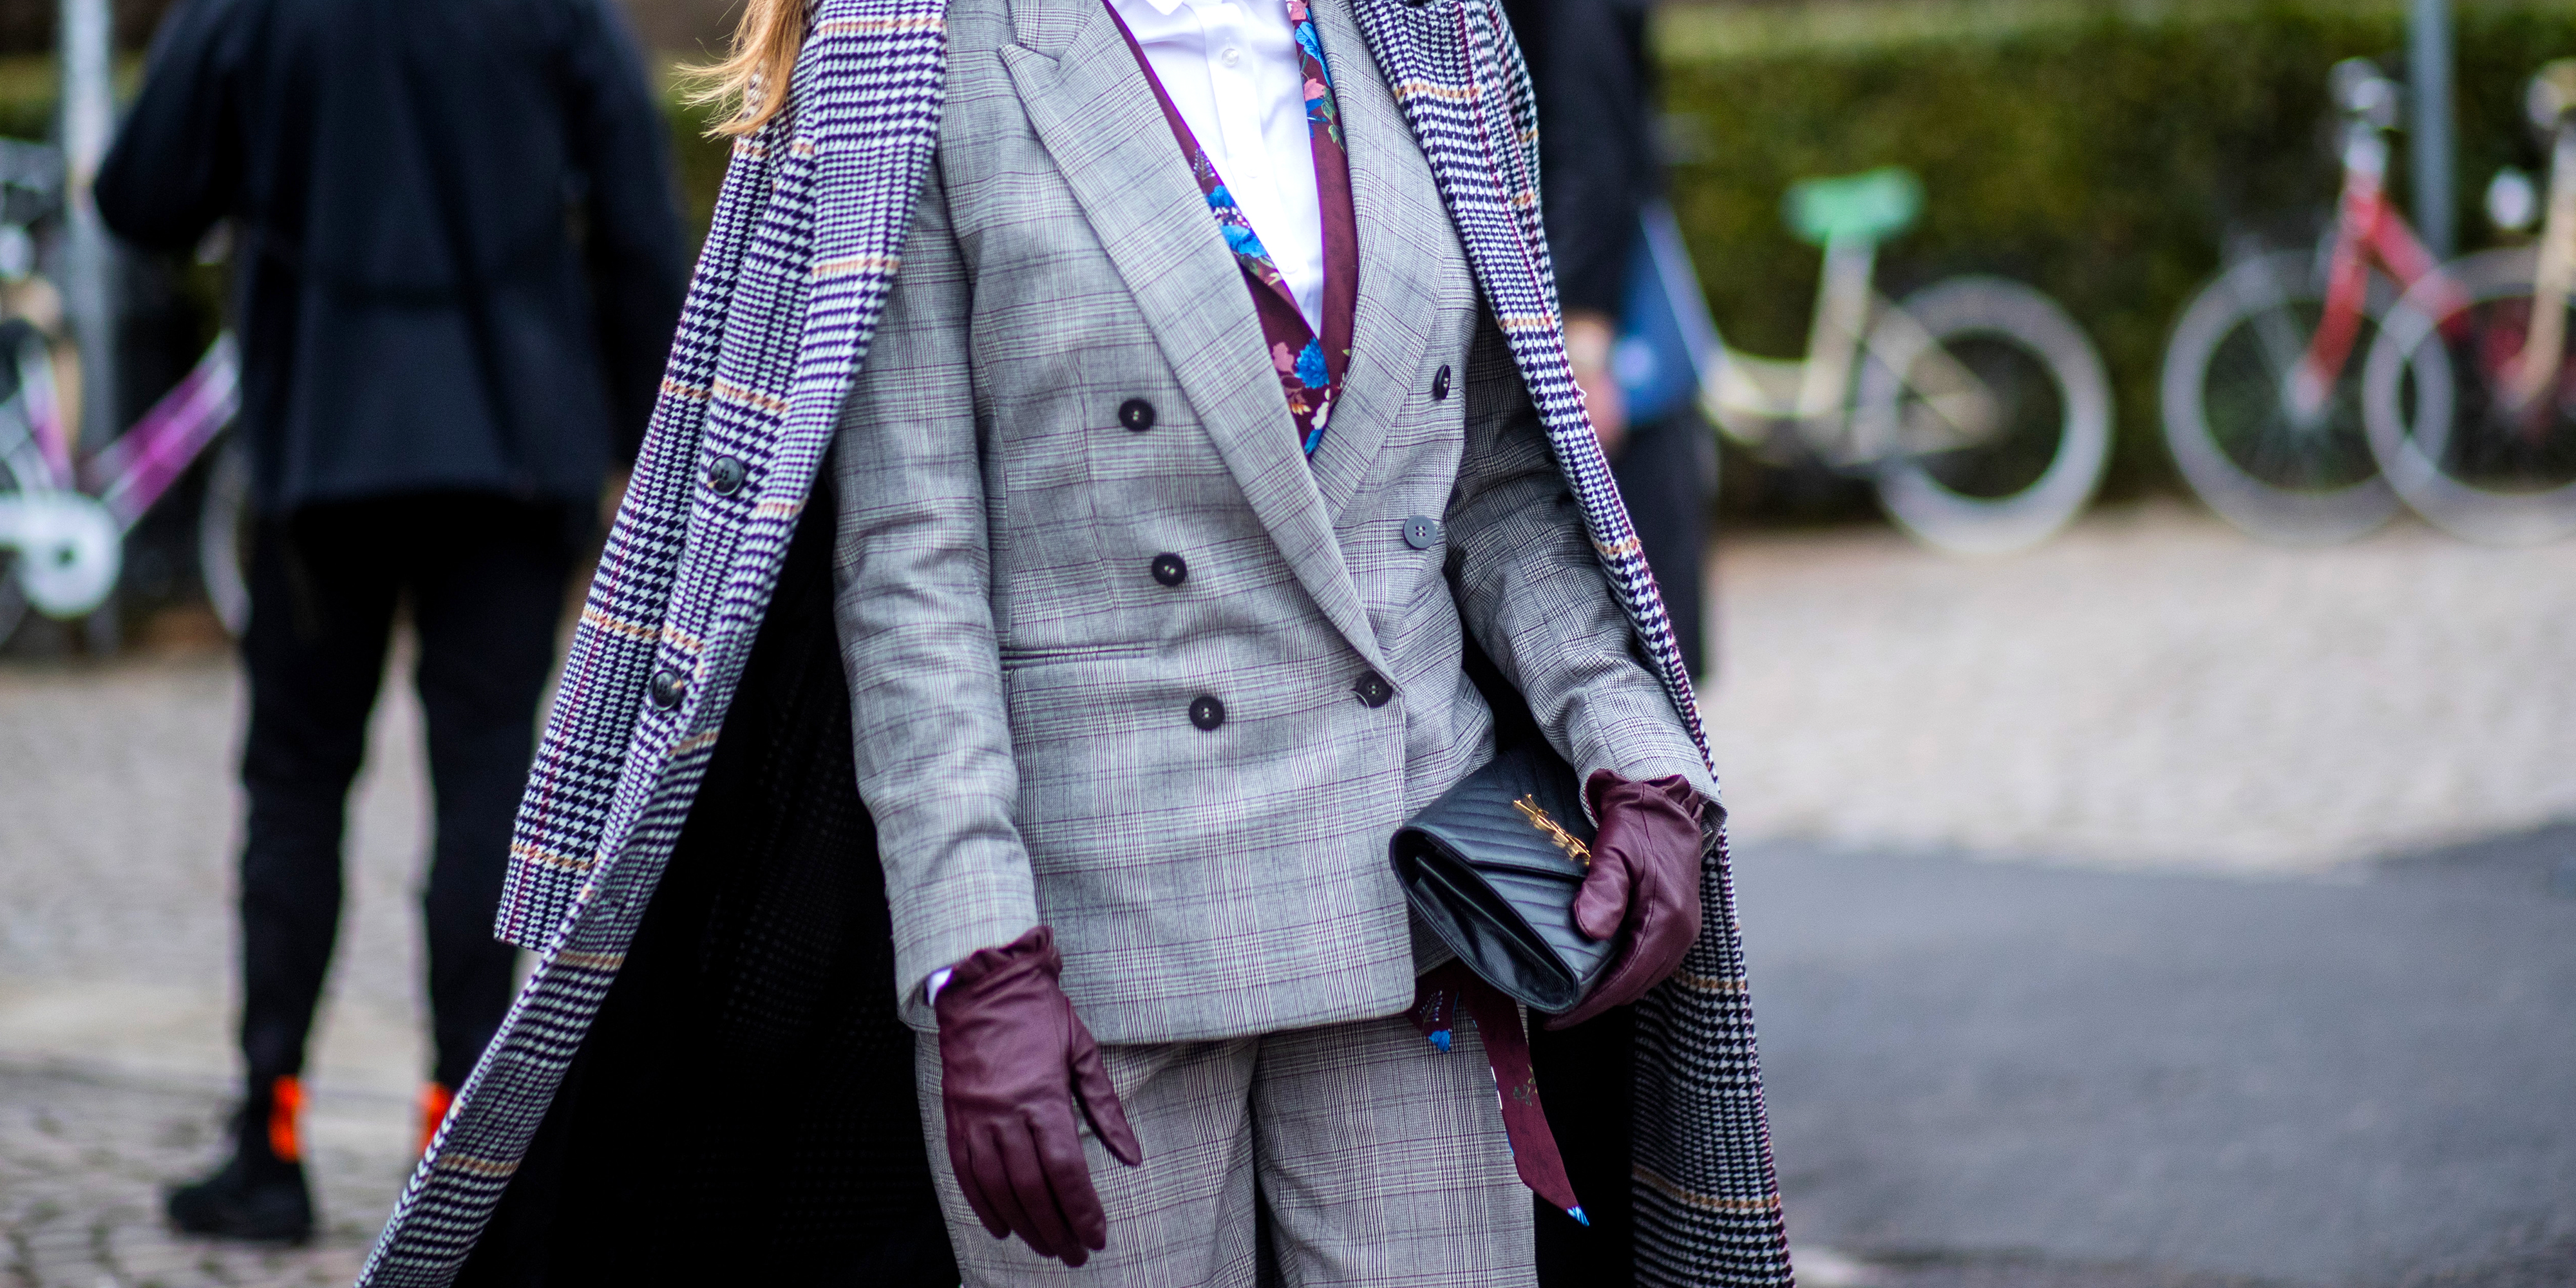 FLORENCE, ITALY - JANUARY 09: A guest wearing grey suit, gloves is seen during the 93. Pitti Immagine Uomo at Fortezza Da Basso on January 9, 2018 in Florence, Italy. (Photo by Christian Vierig/Getty Images)